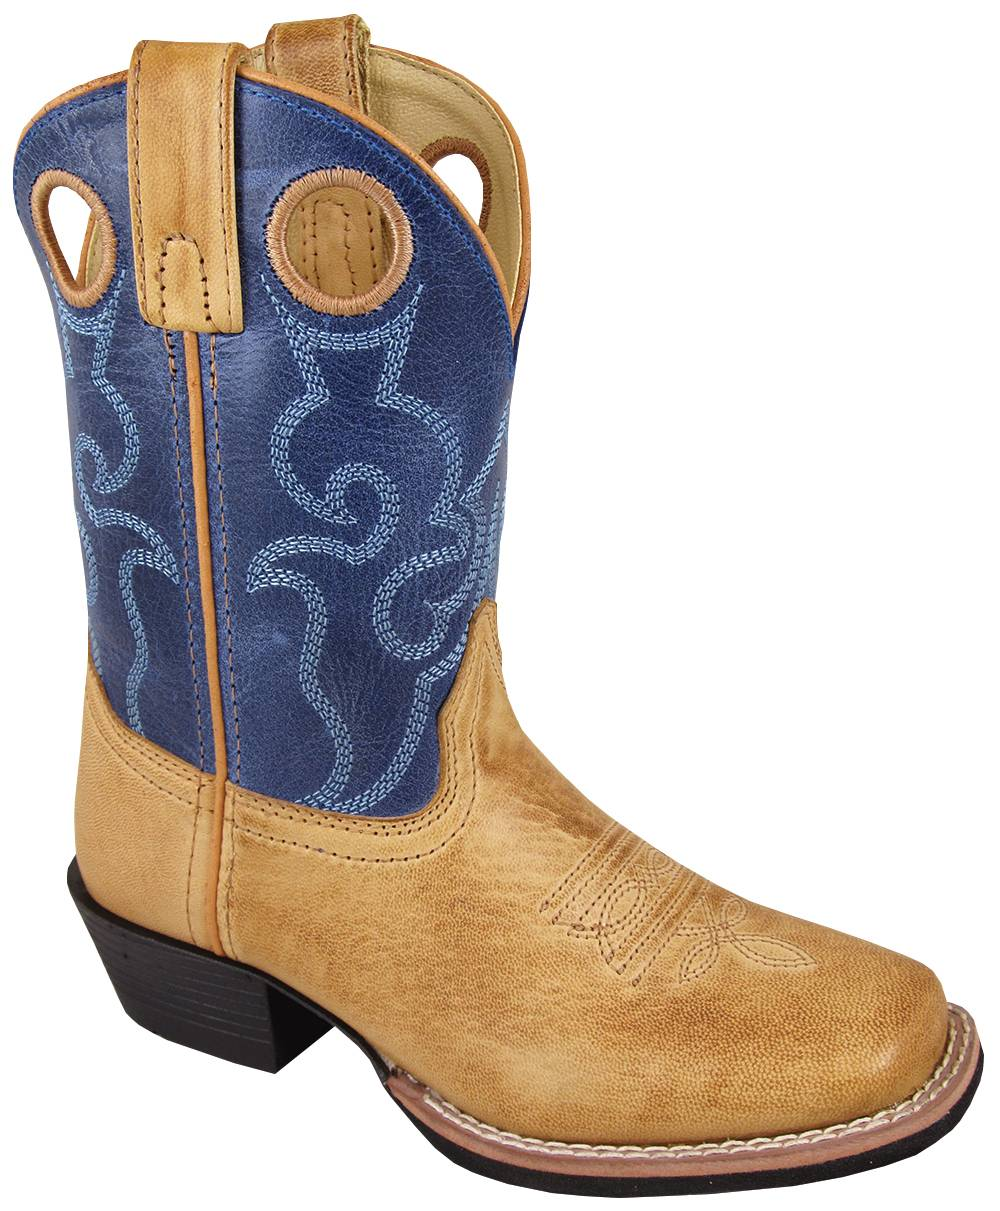 Smoky Mountain Youth Clint Boots - Tan/Blue